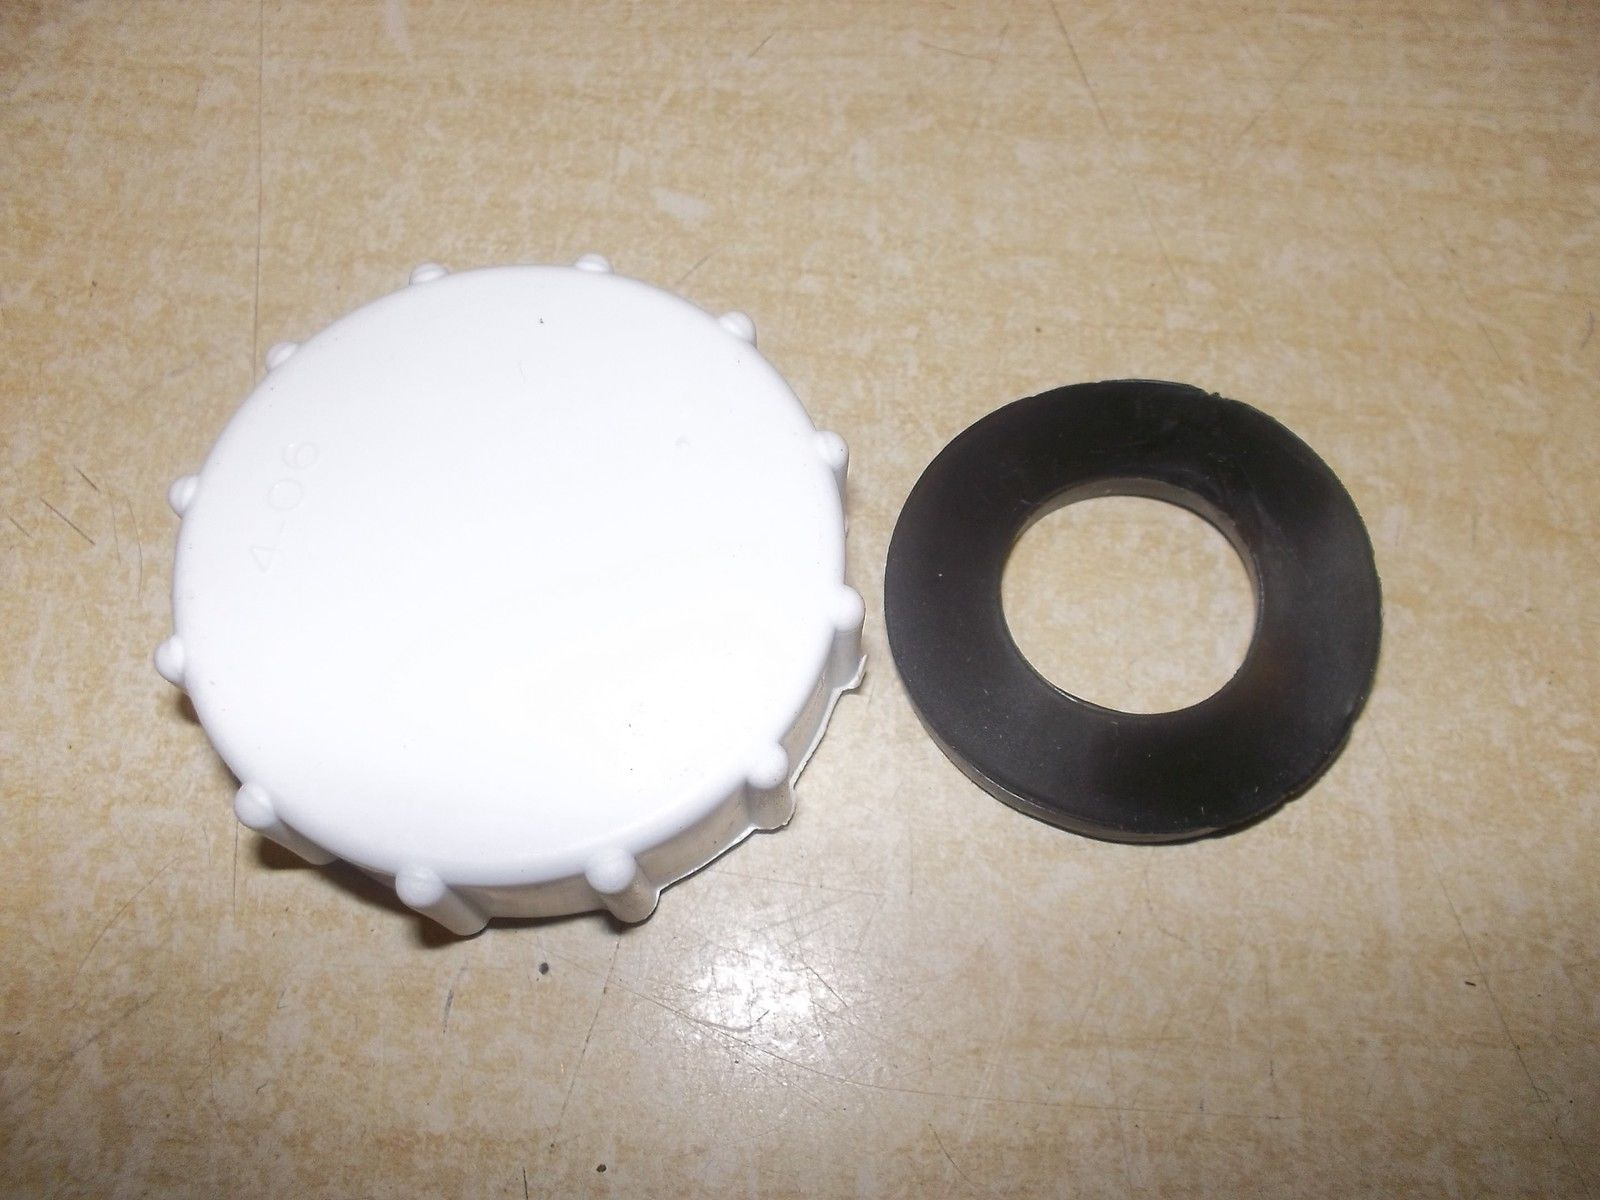 Buy 1 Quot Cap Stop End For Washing Machine Dishwasher Sink